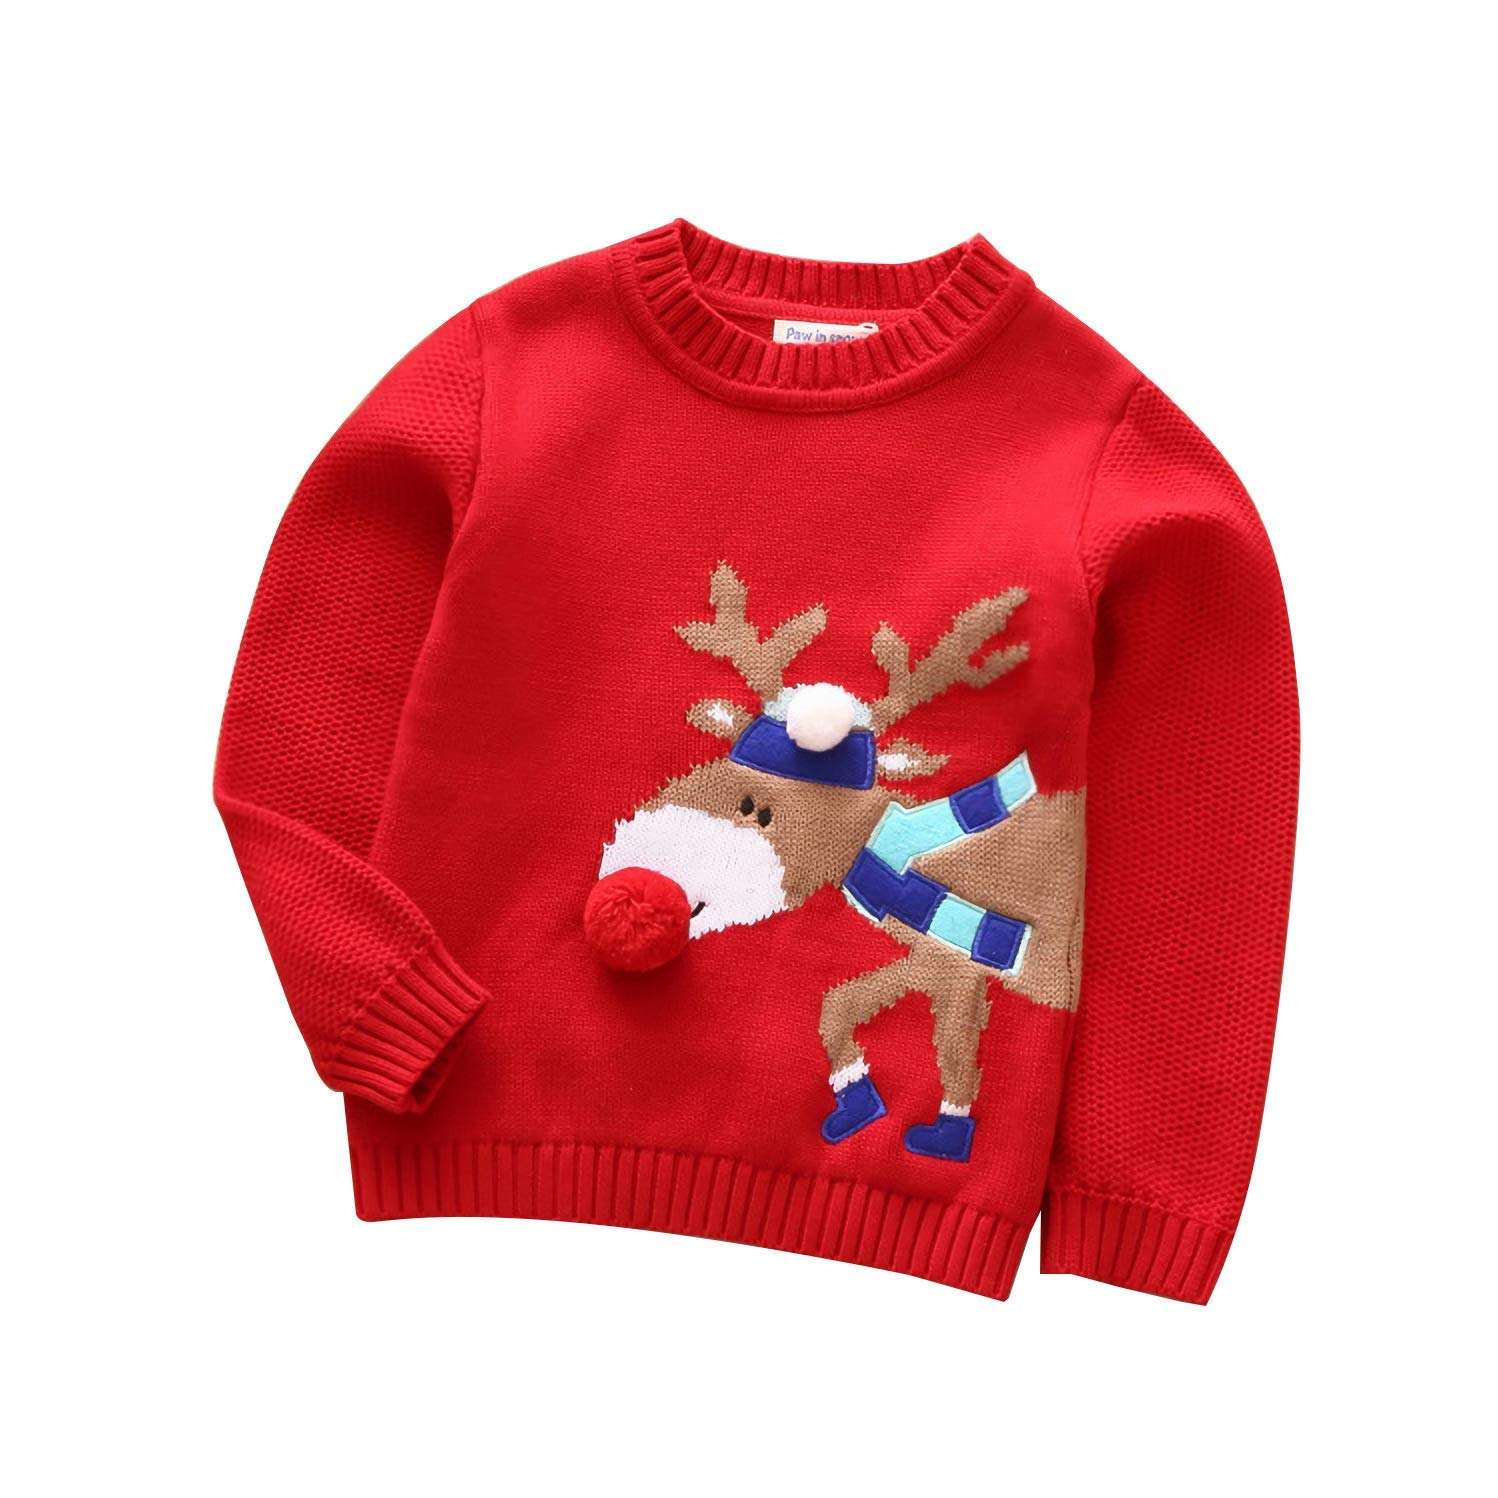 a8638250992b 20 Best Christmas Jumpers for Men